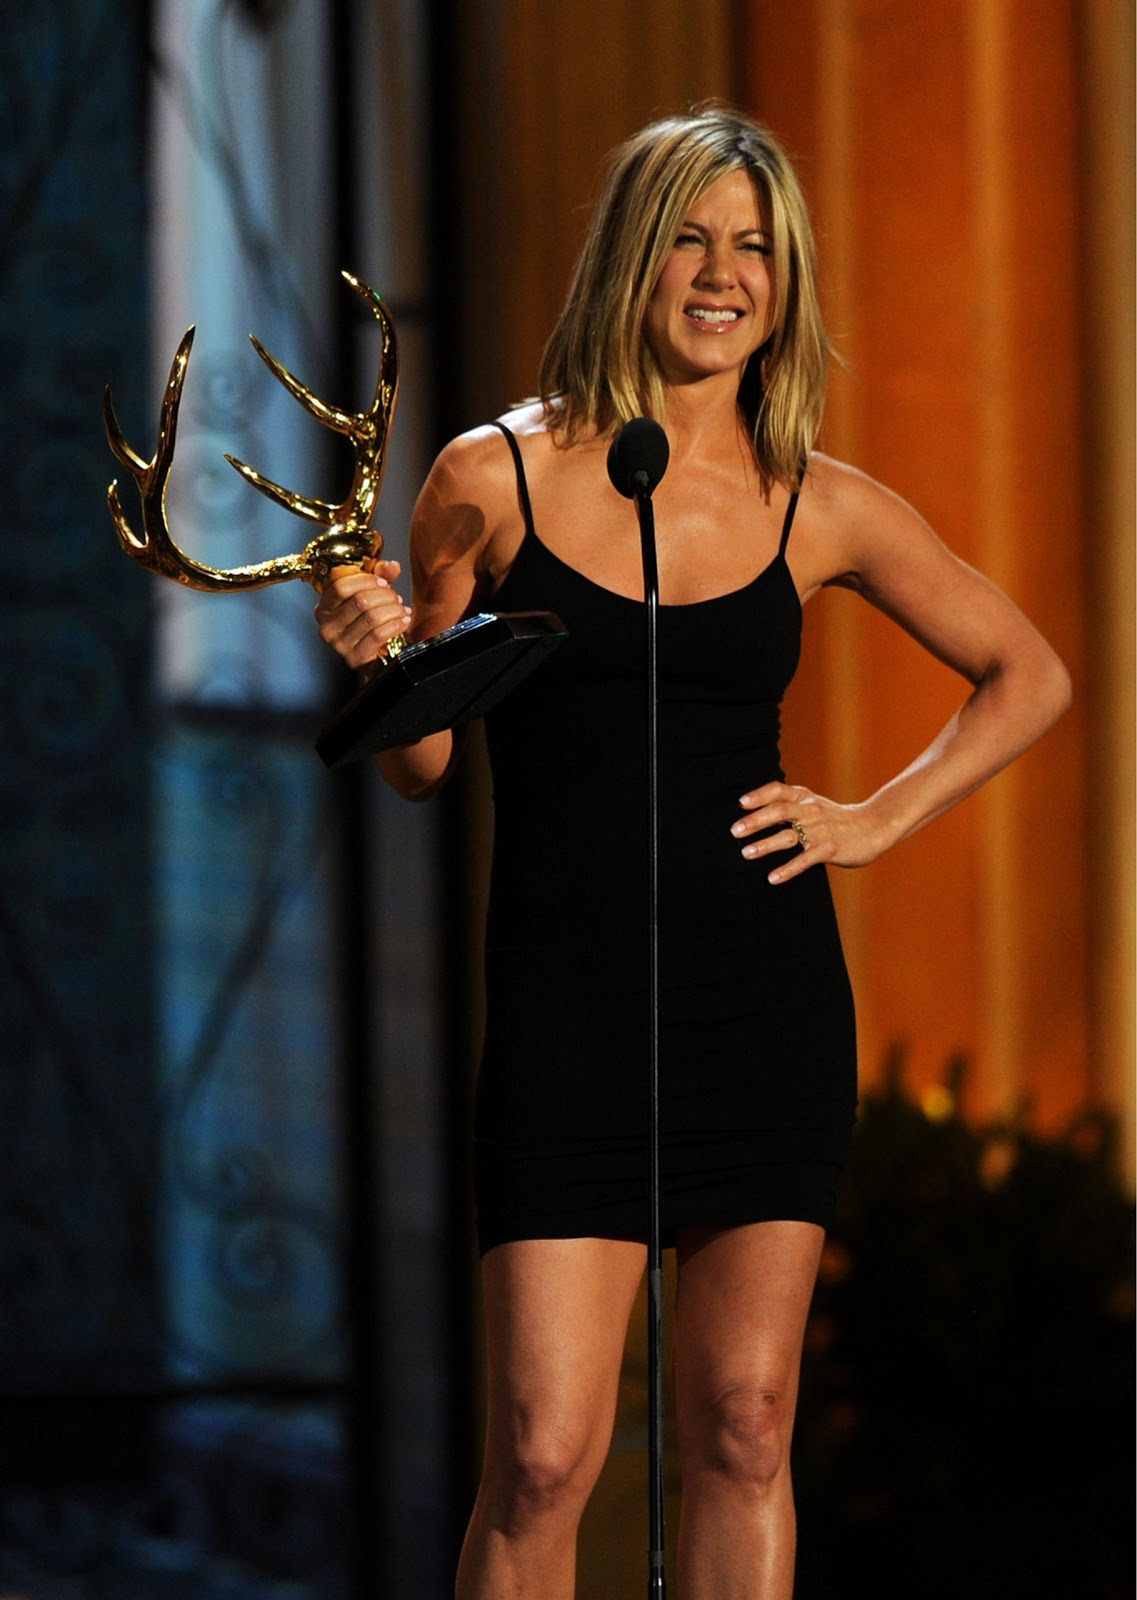 http://2.bp.blogspot.com/--nfxXl-QYxc/TfgMHf9w5LI/AAAAAAAAAmg/OFnH1ZcEHNk/s1600/Jennifer+Aniston+Spike+TV+Guys+Choice+Awards+June.jpg